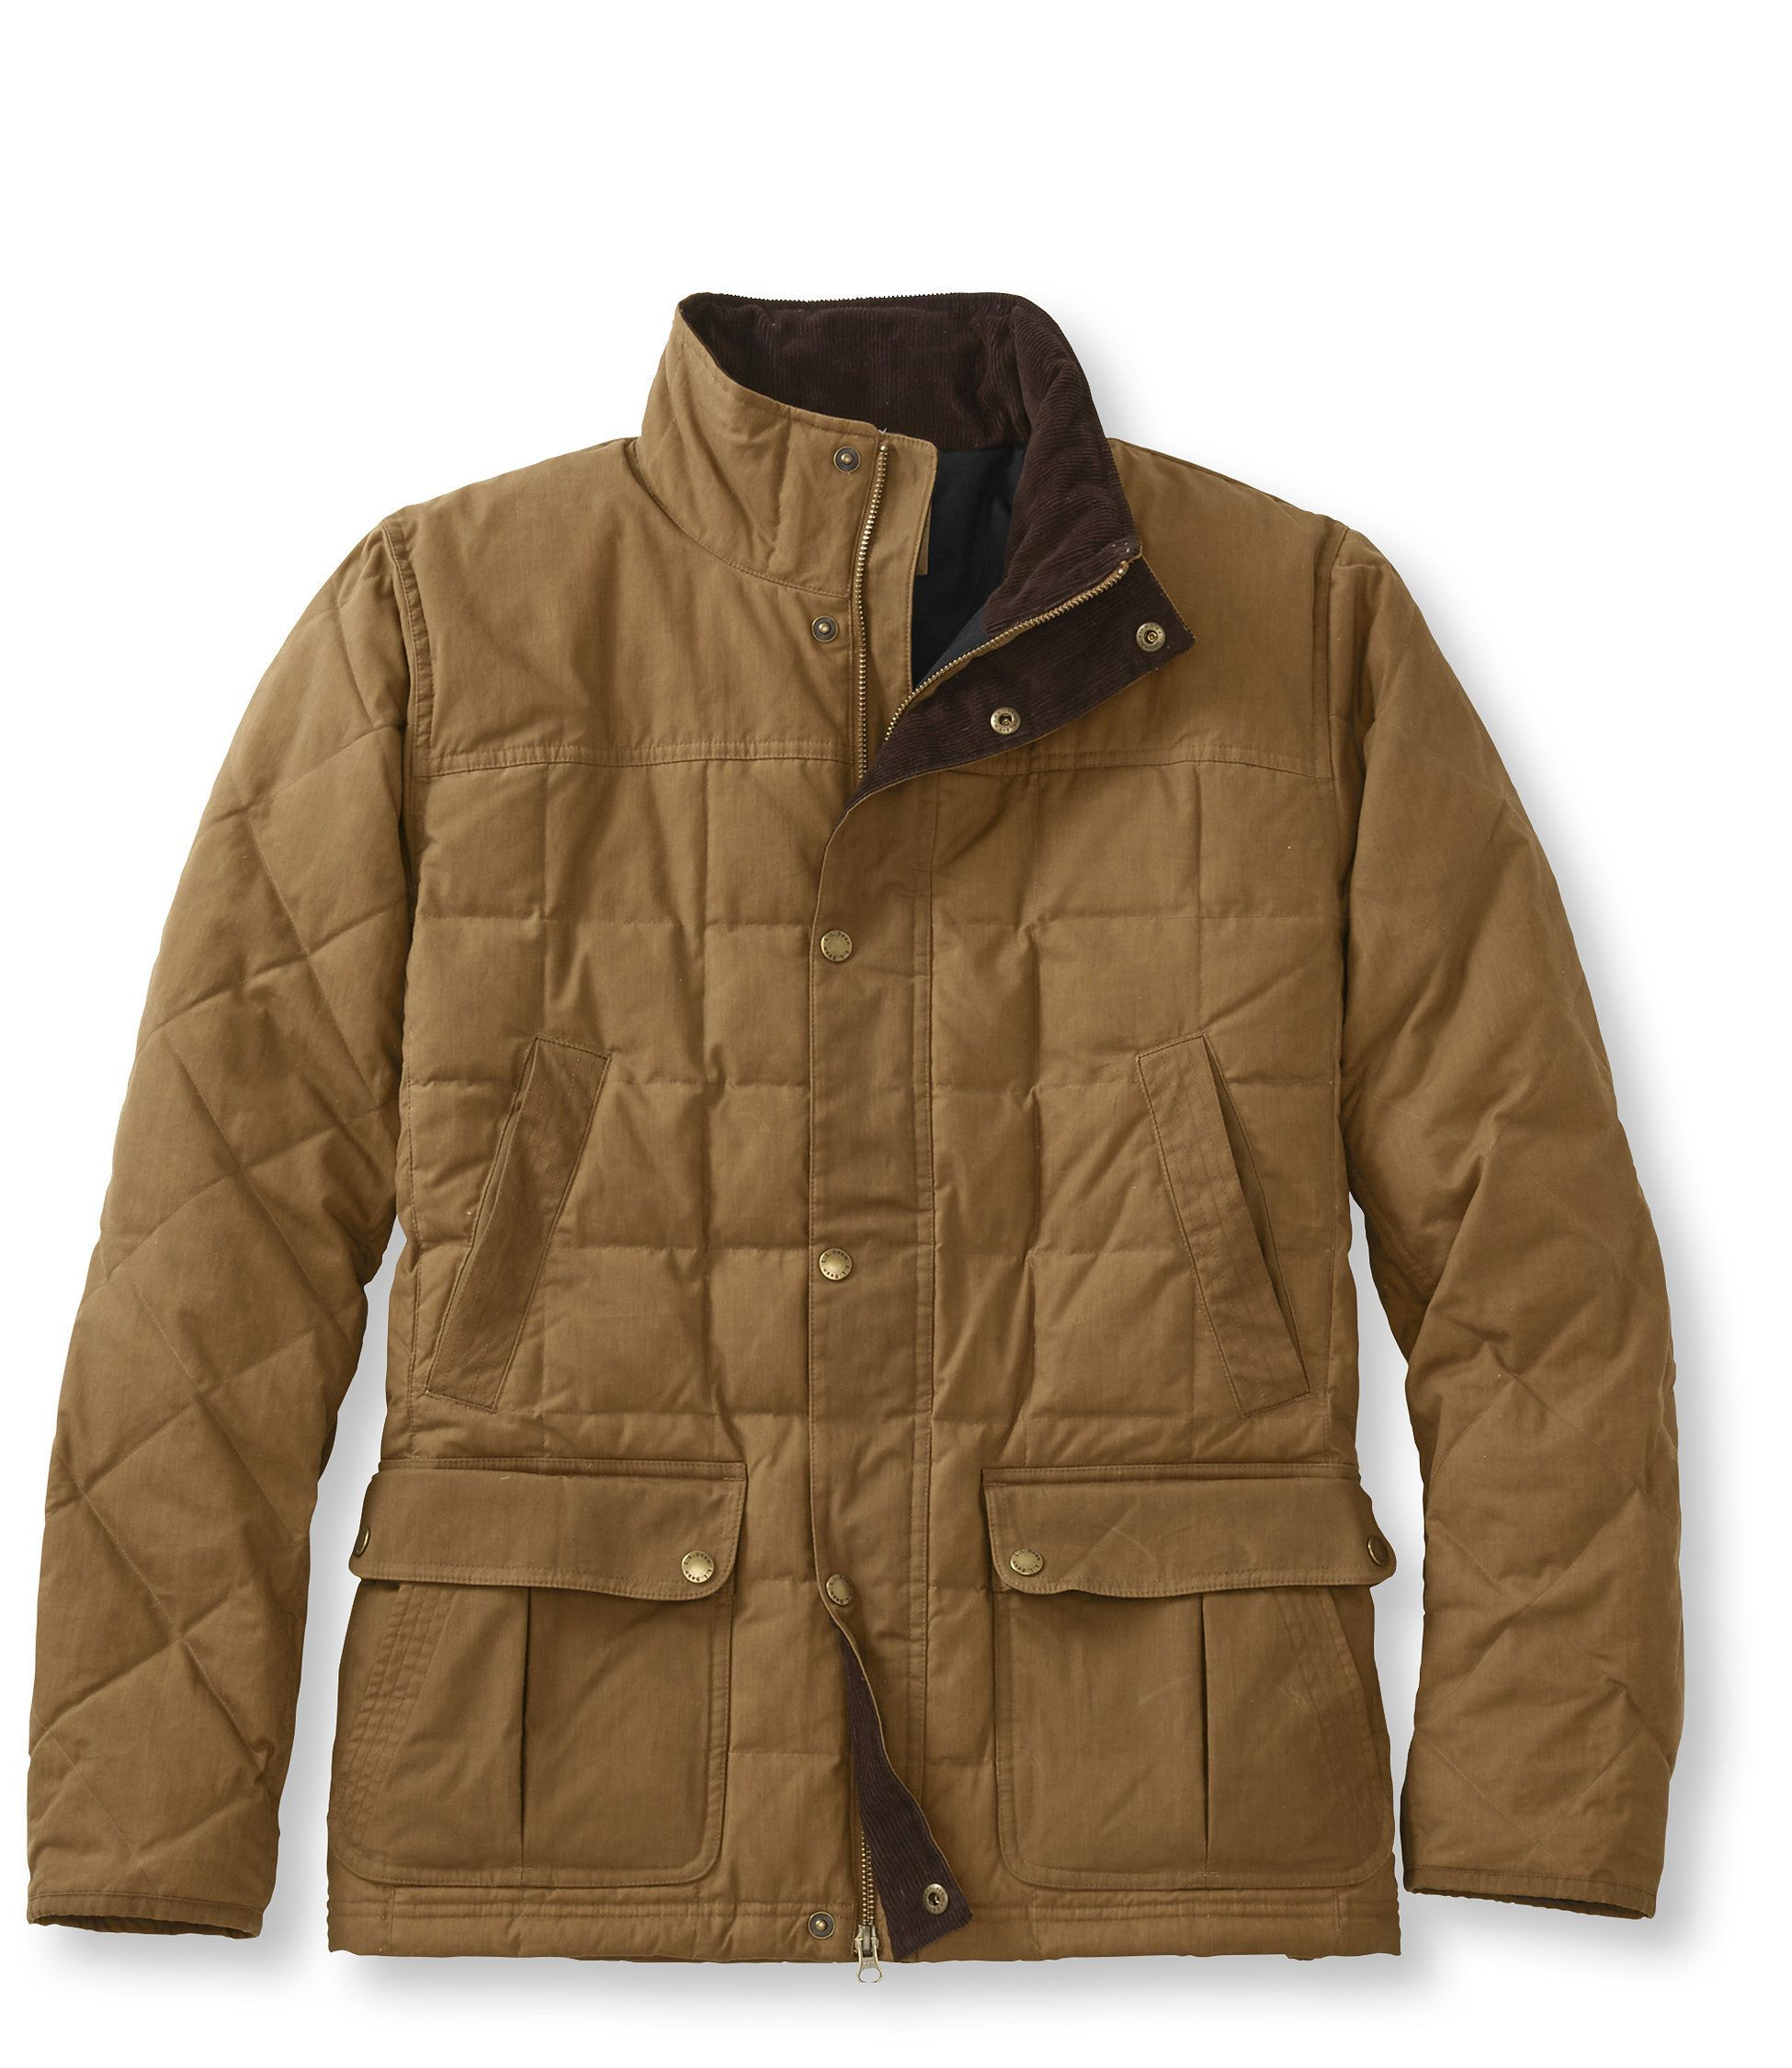 L.L.Bean Upcountry Waxed Cotton Down Jacket | Best mens